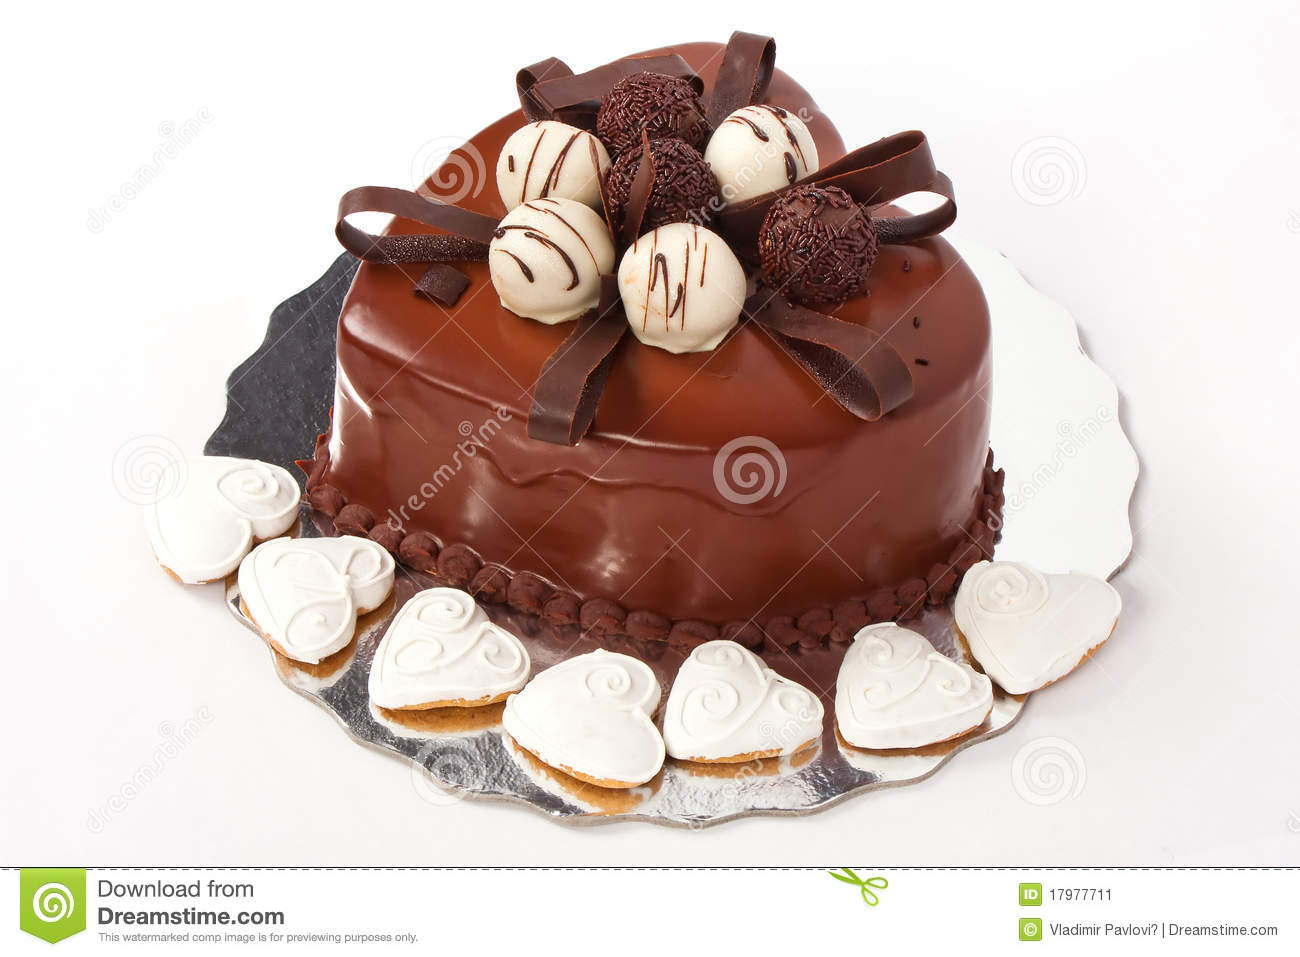 Heart Shaped Cake Stock Photos : Chocolate Cake In Heart Shape Stock Image - Image: 17977711